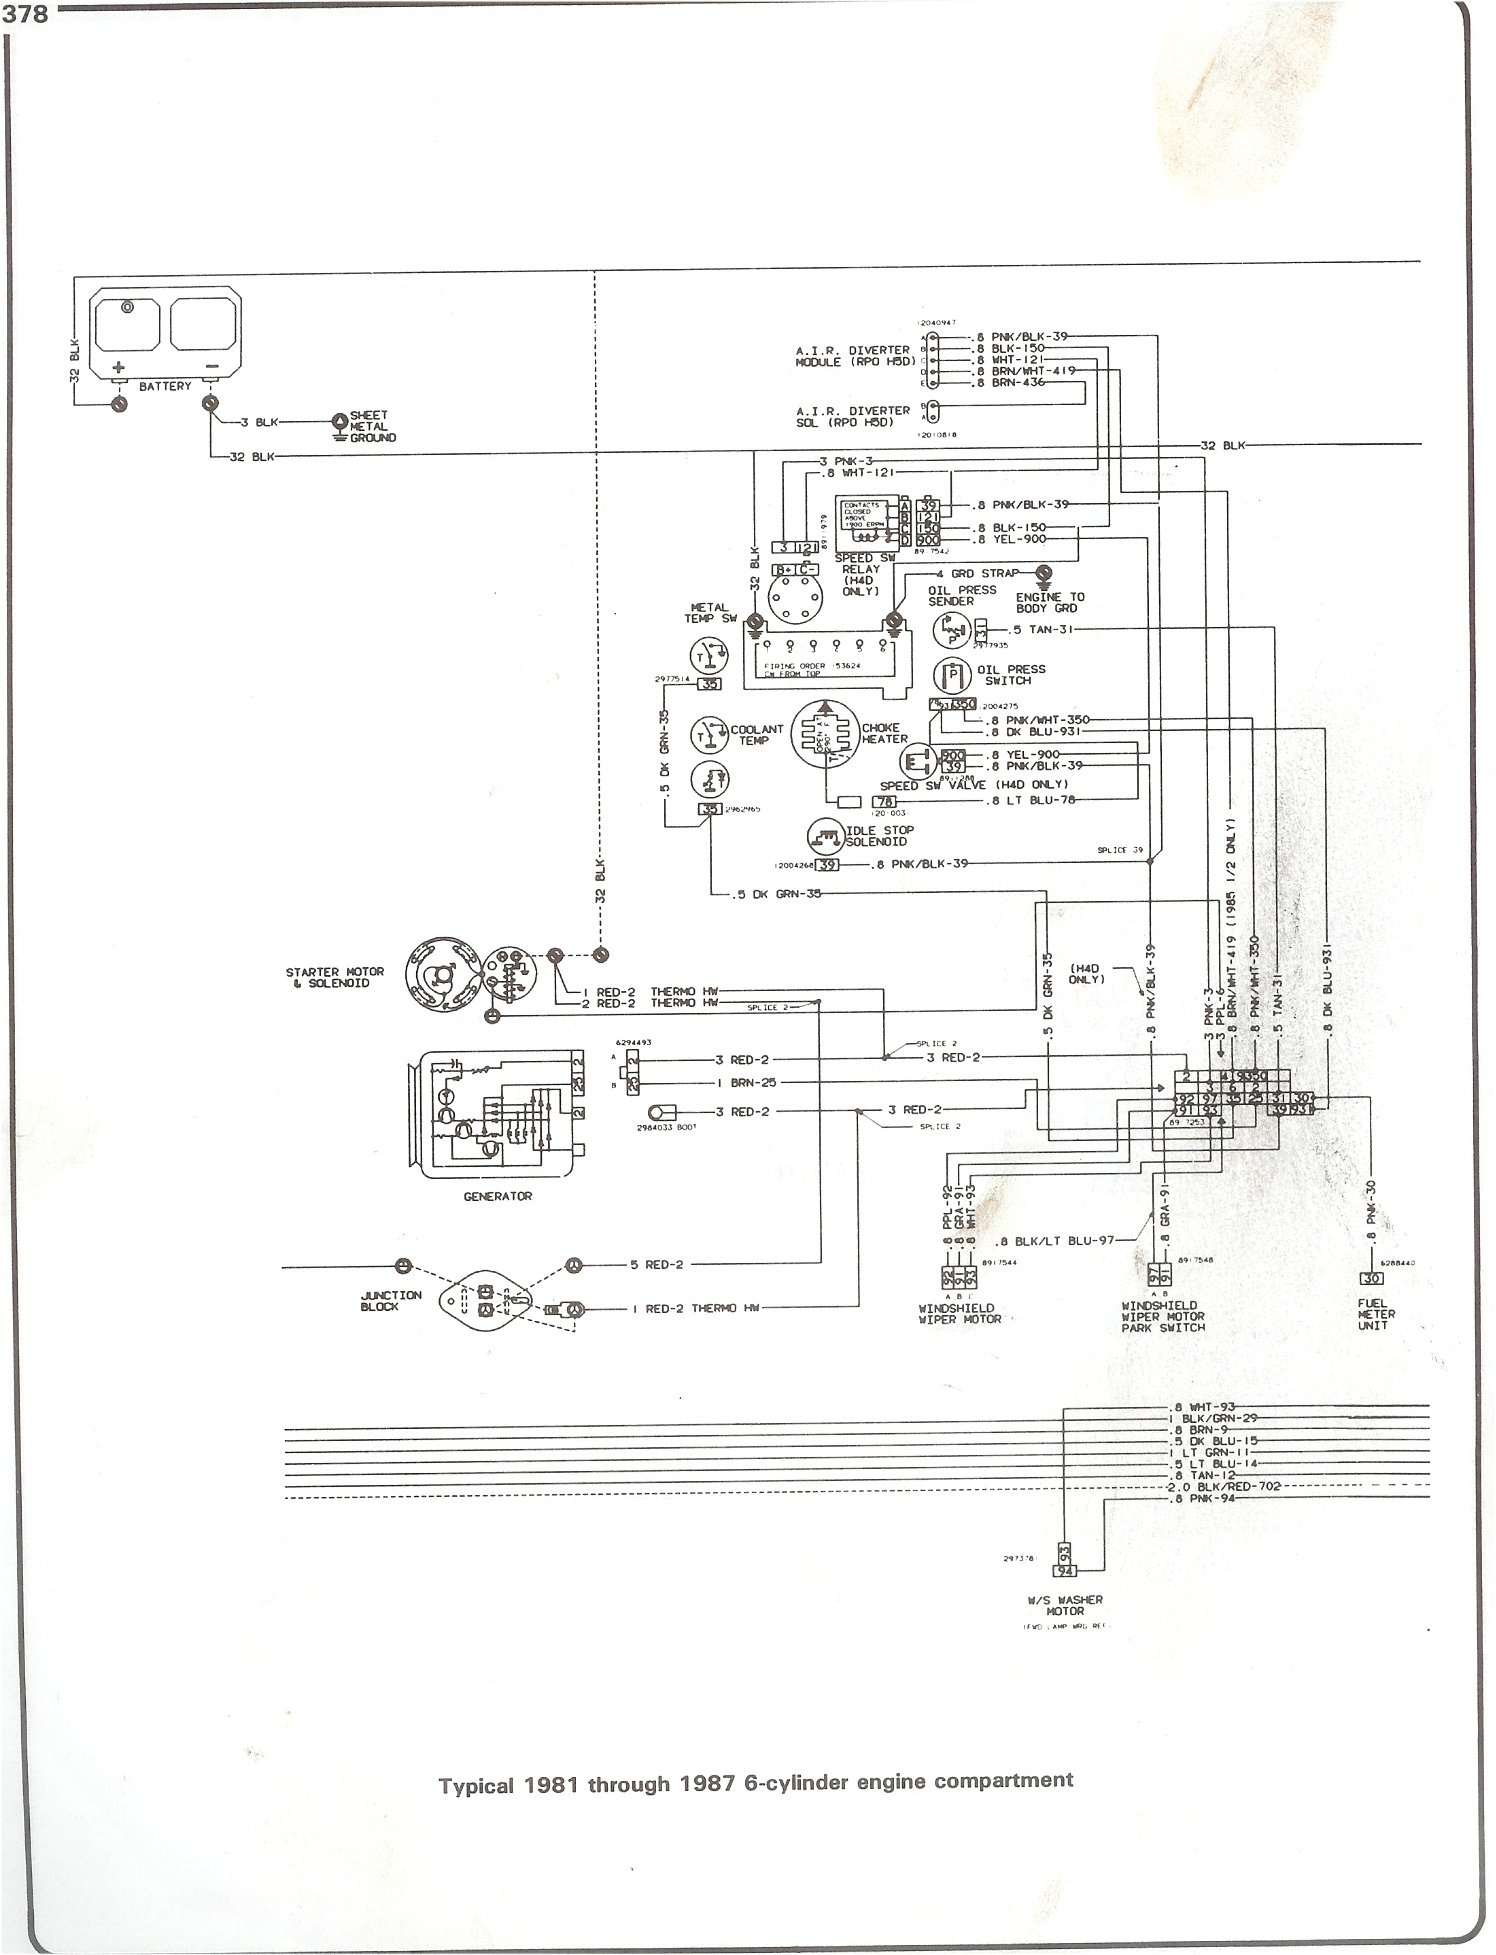 complete 73 87 wiring diagrams rh forum 73 87chevytrucks com 3-Way Switch Wiring Diagram Basic Electrical Wiring Diagrams